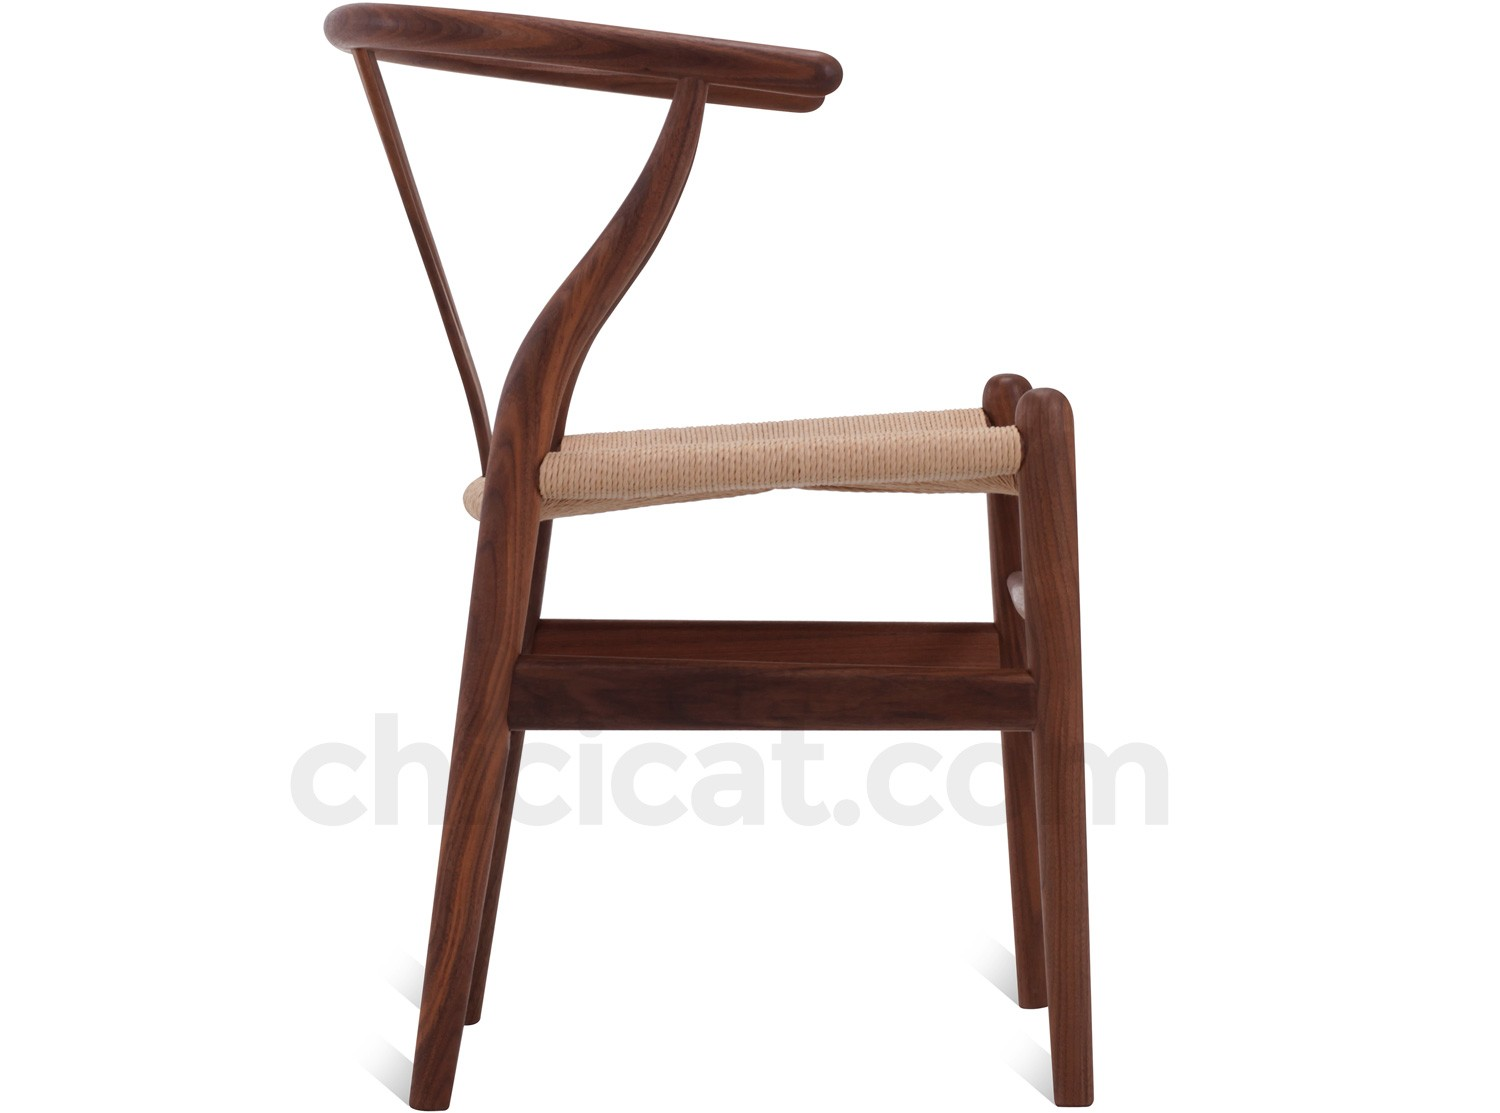 Pictured In Genuine Walnut Timber With Natural Rattan Cord